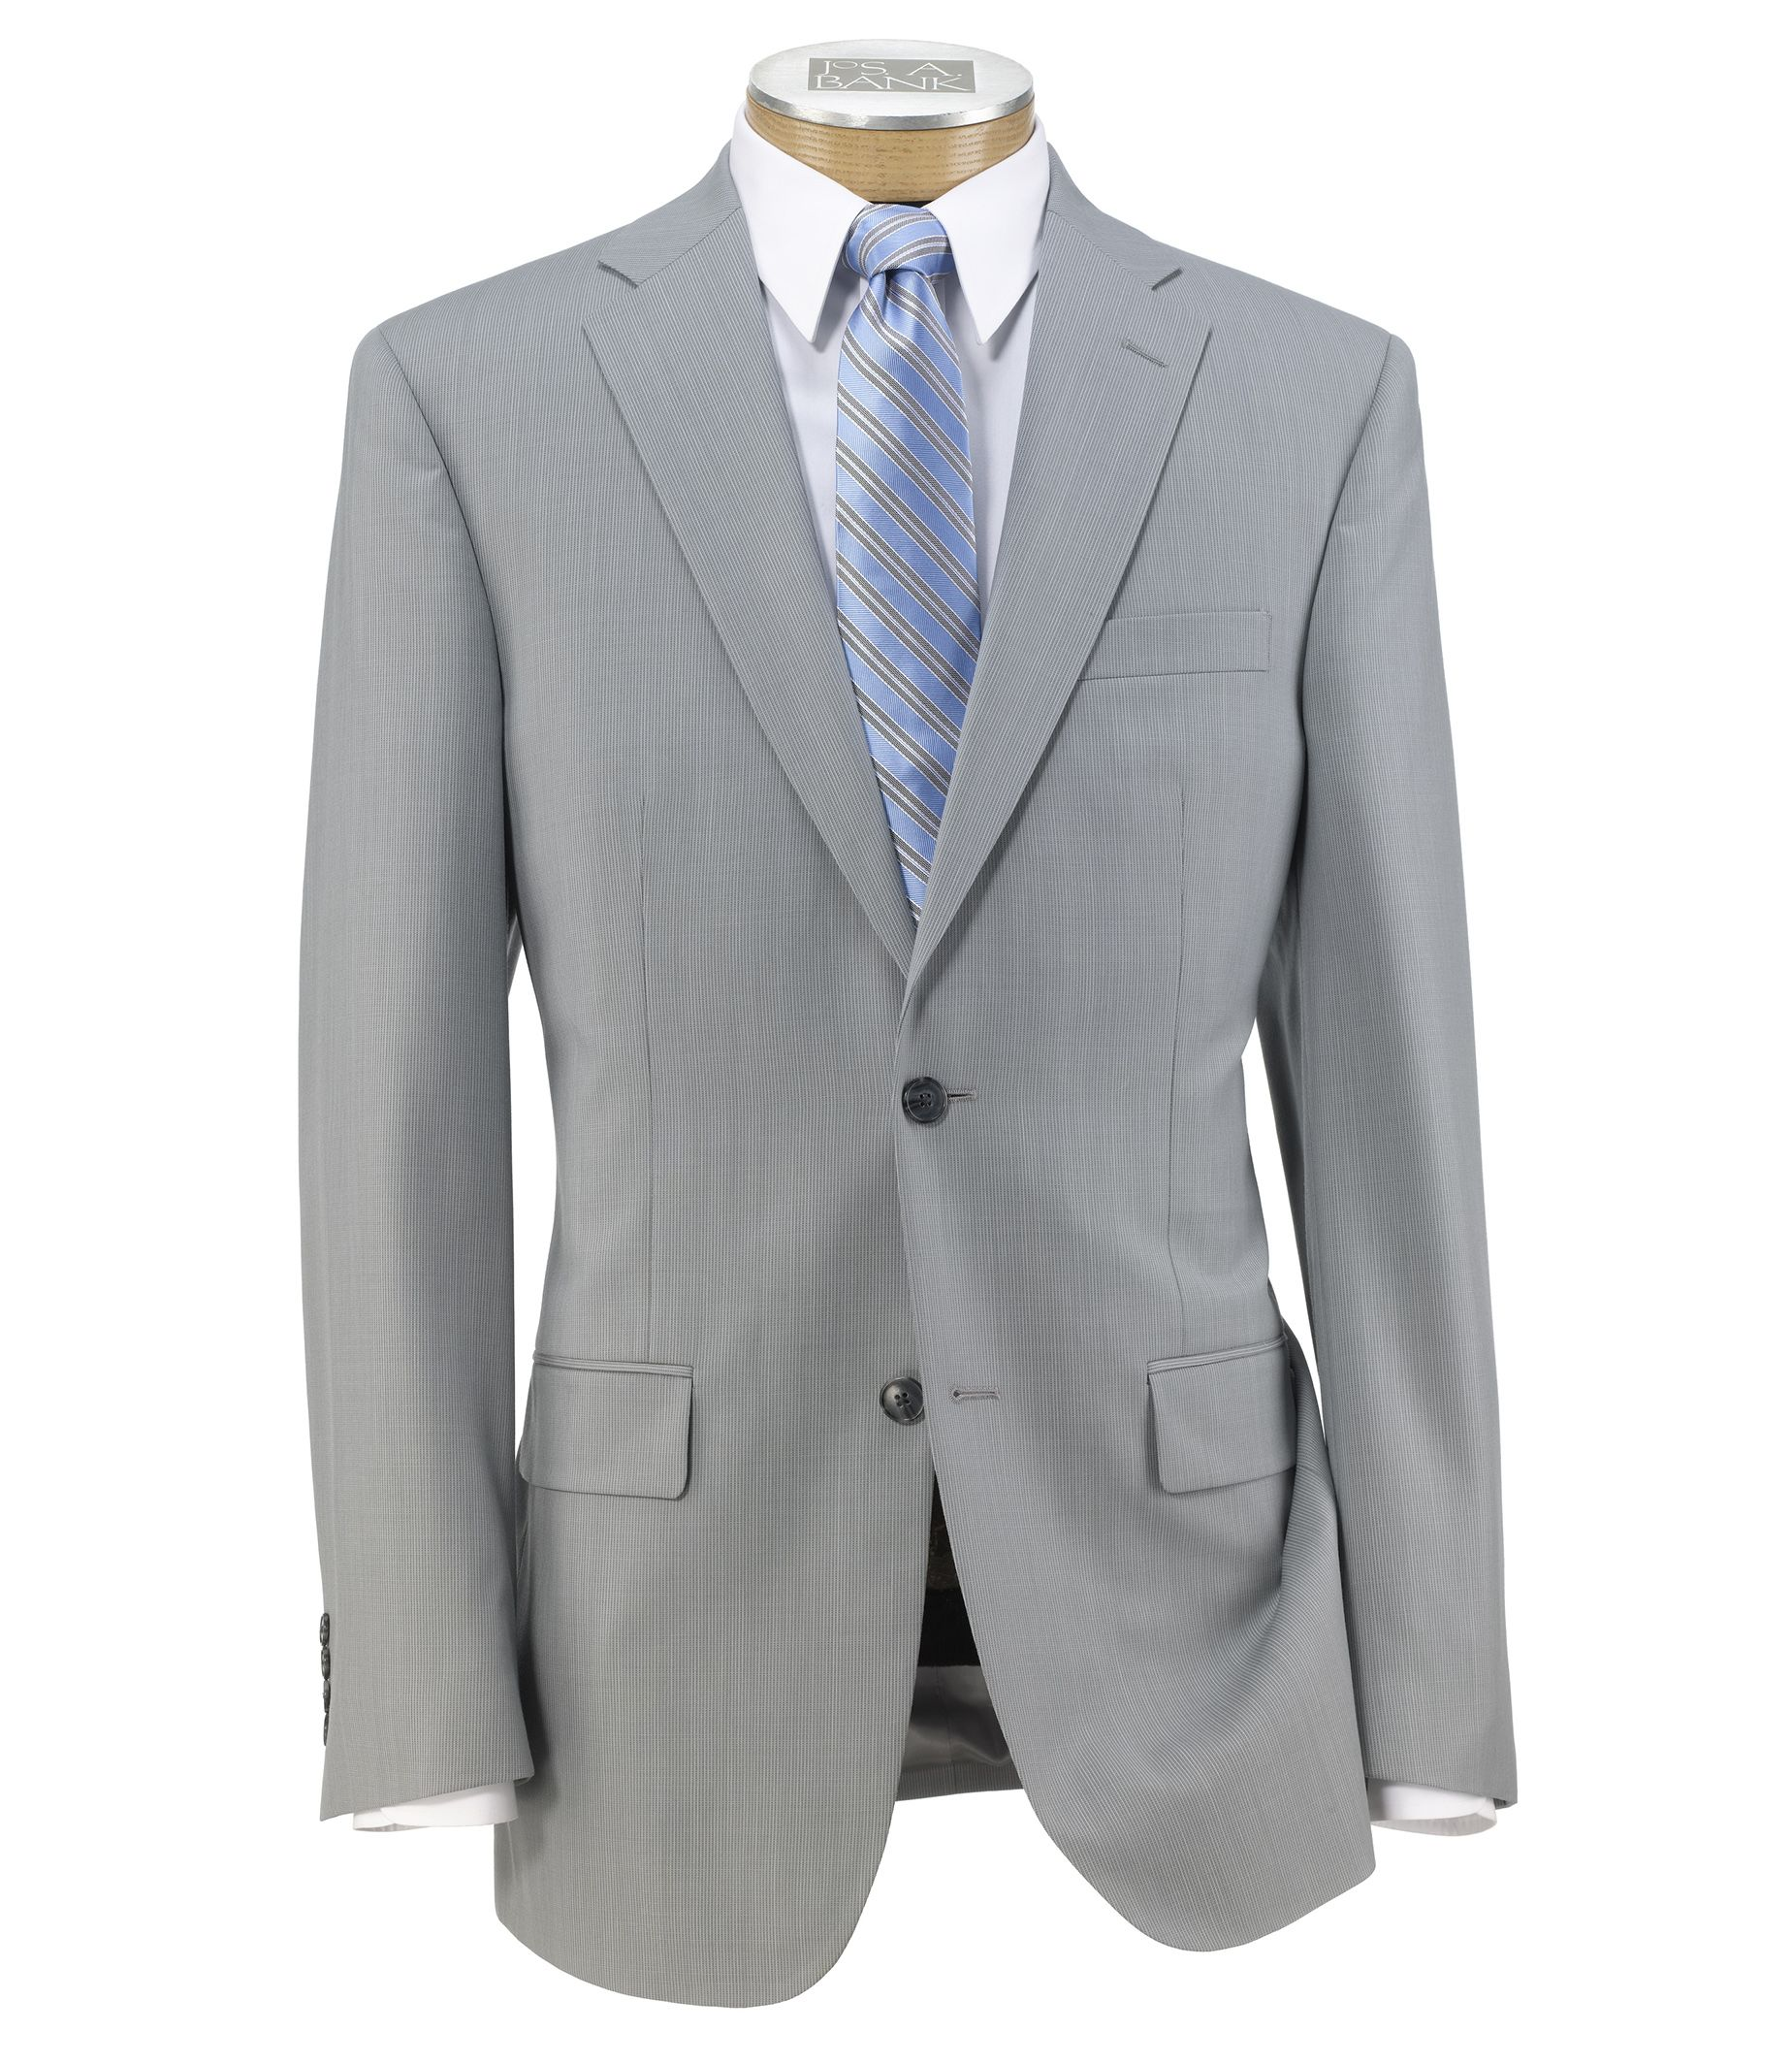 Traveler Tailored Fit 2-Button Suit with Plain Front Trousers Extended Sizes- Light Grey Blue Stripe